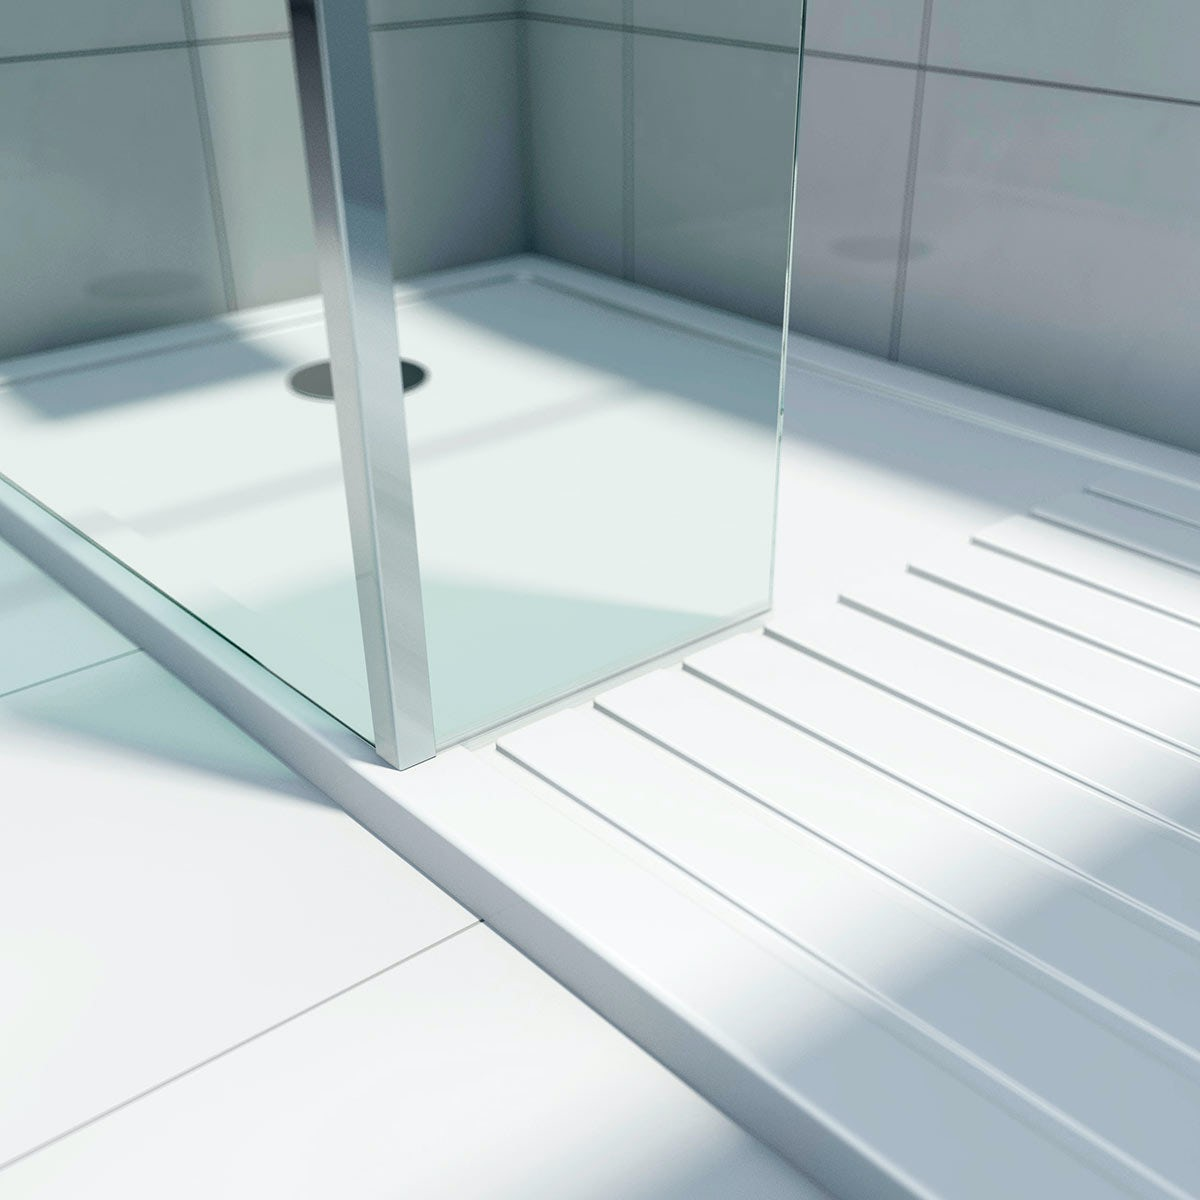 Mode 8mm Walk In Shower Glass Panel With Return Panel Tray ...